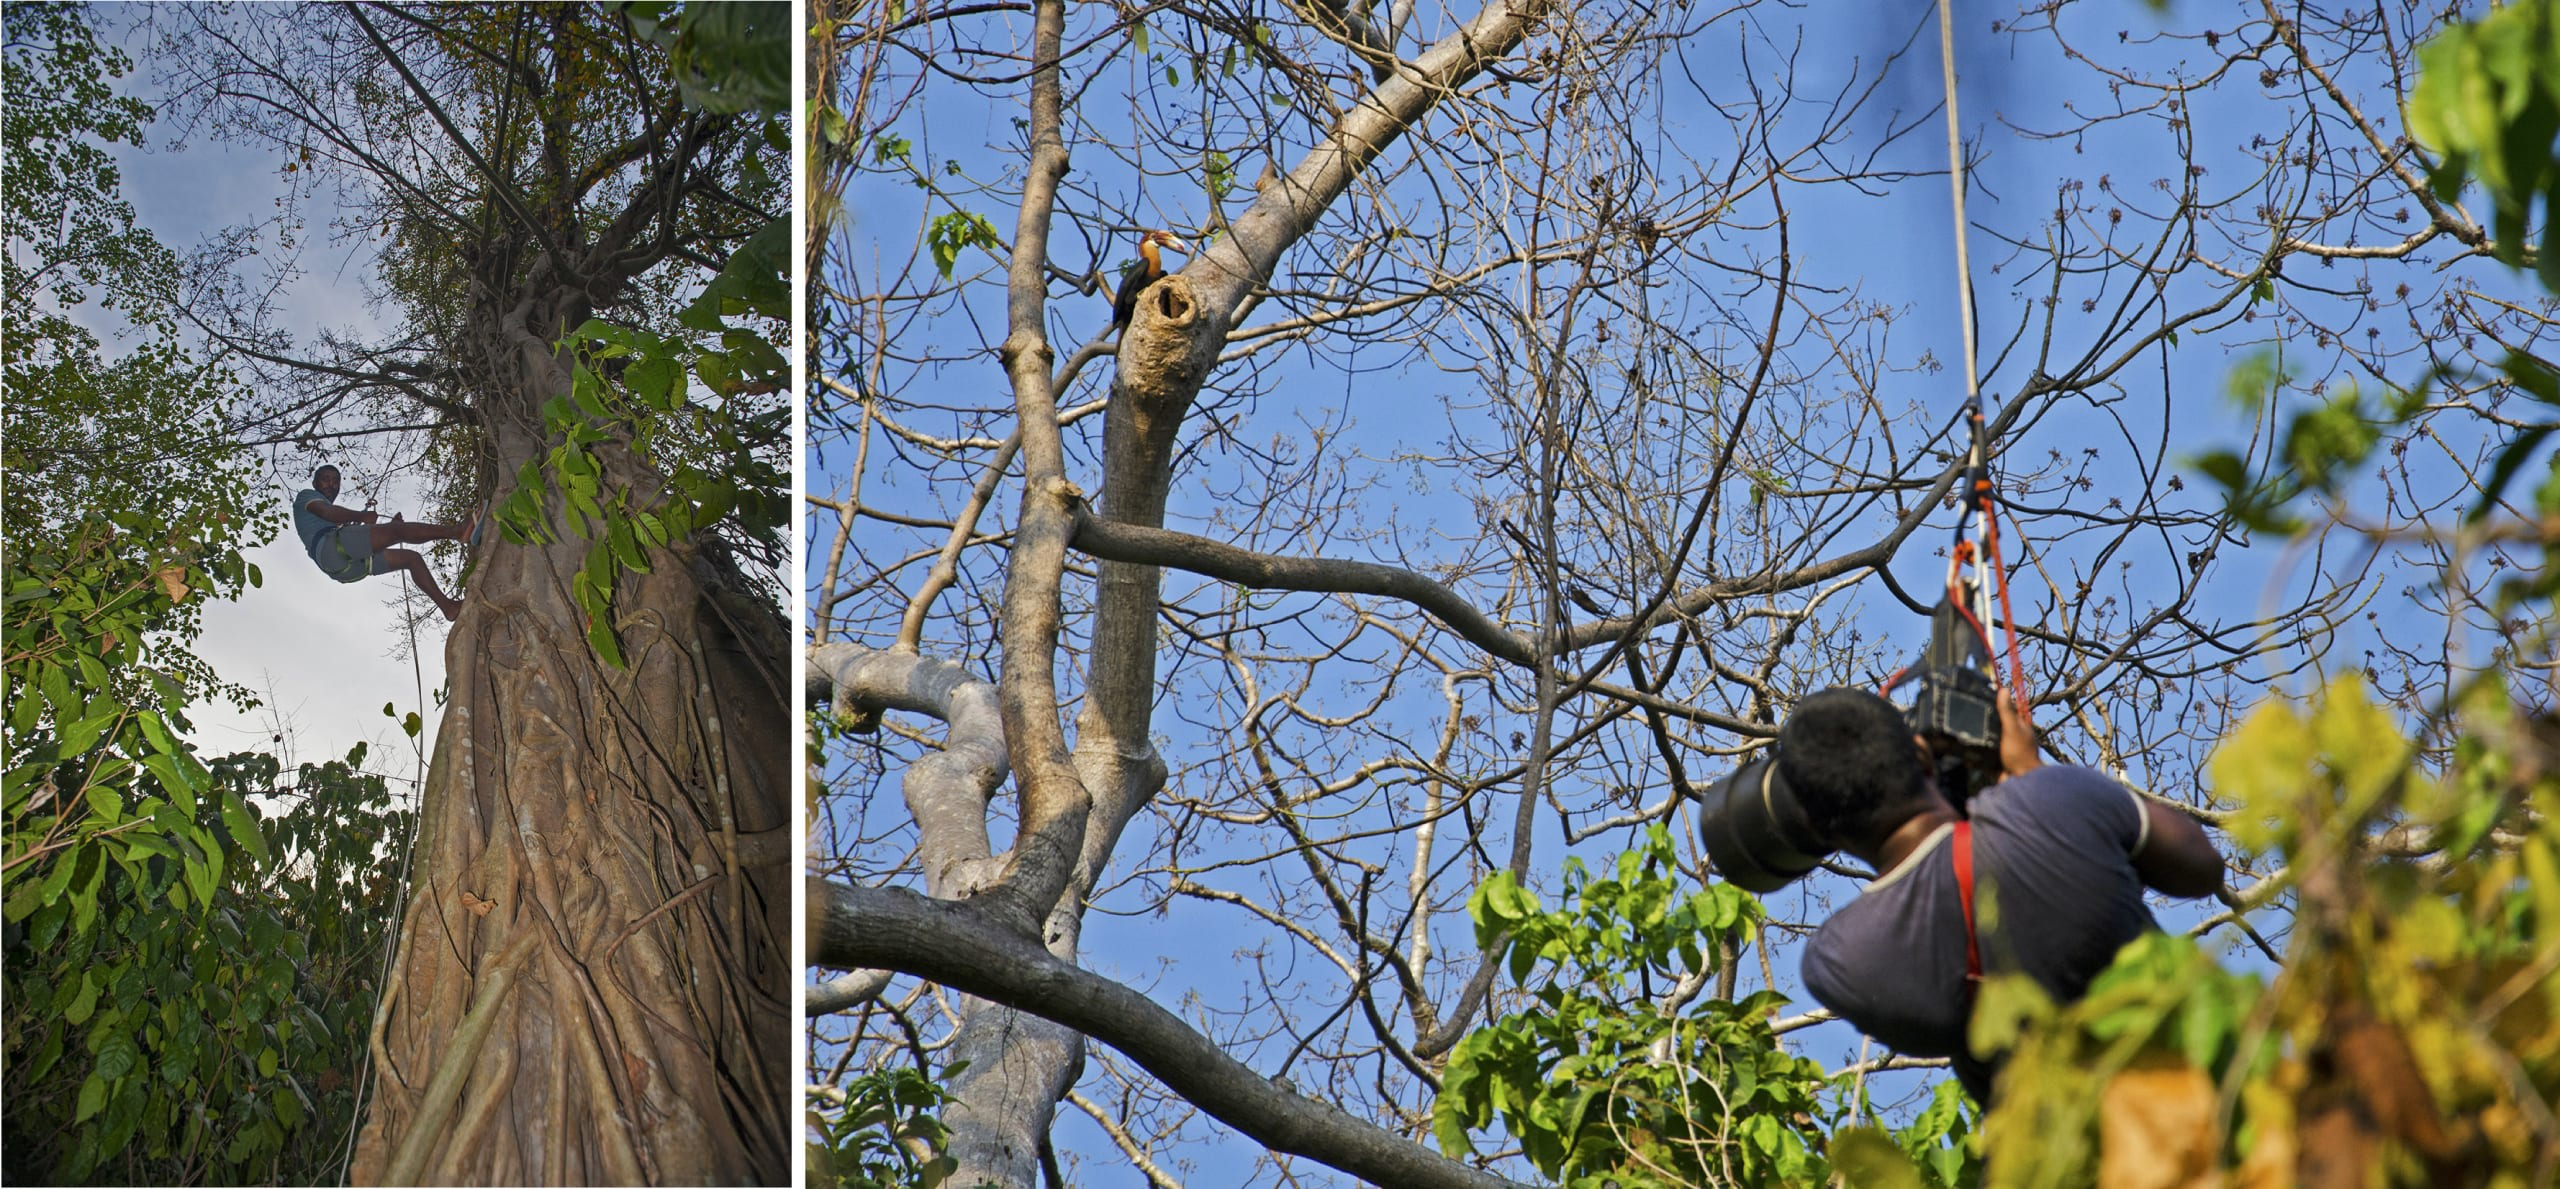 """The first thing photographer Dhritiman Mukherjee did upon his arrival on Narcondam was to recce the island and identify the feeding and nesting trees of the hornbills. """"There was a fig tree that they would visit every day,"""" but since fig trees are quite large, photographing the birds required a little preparation. The solution: rigging himself up the tree using a pulley so he could reach the same height as the hornbills. """"After I climbed to the top of the feeding tree, I stayed there almost the entire day,"""" he says."""